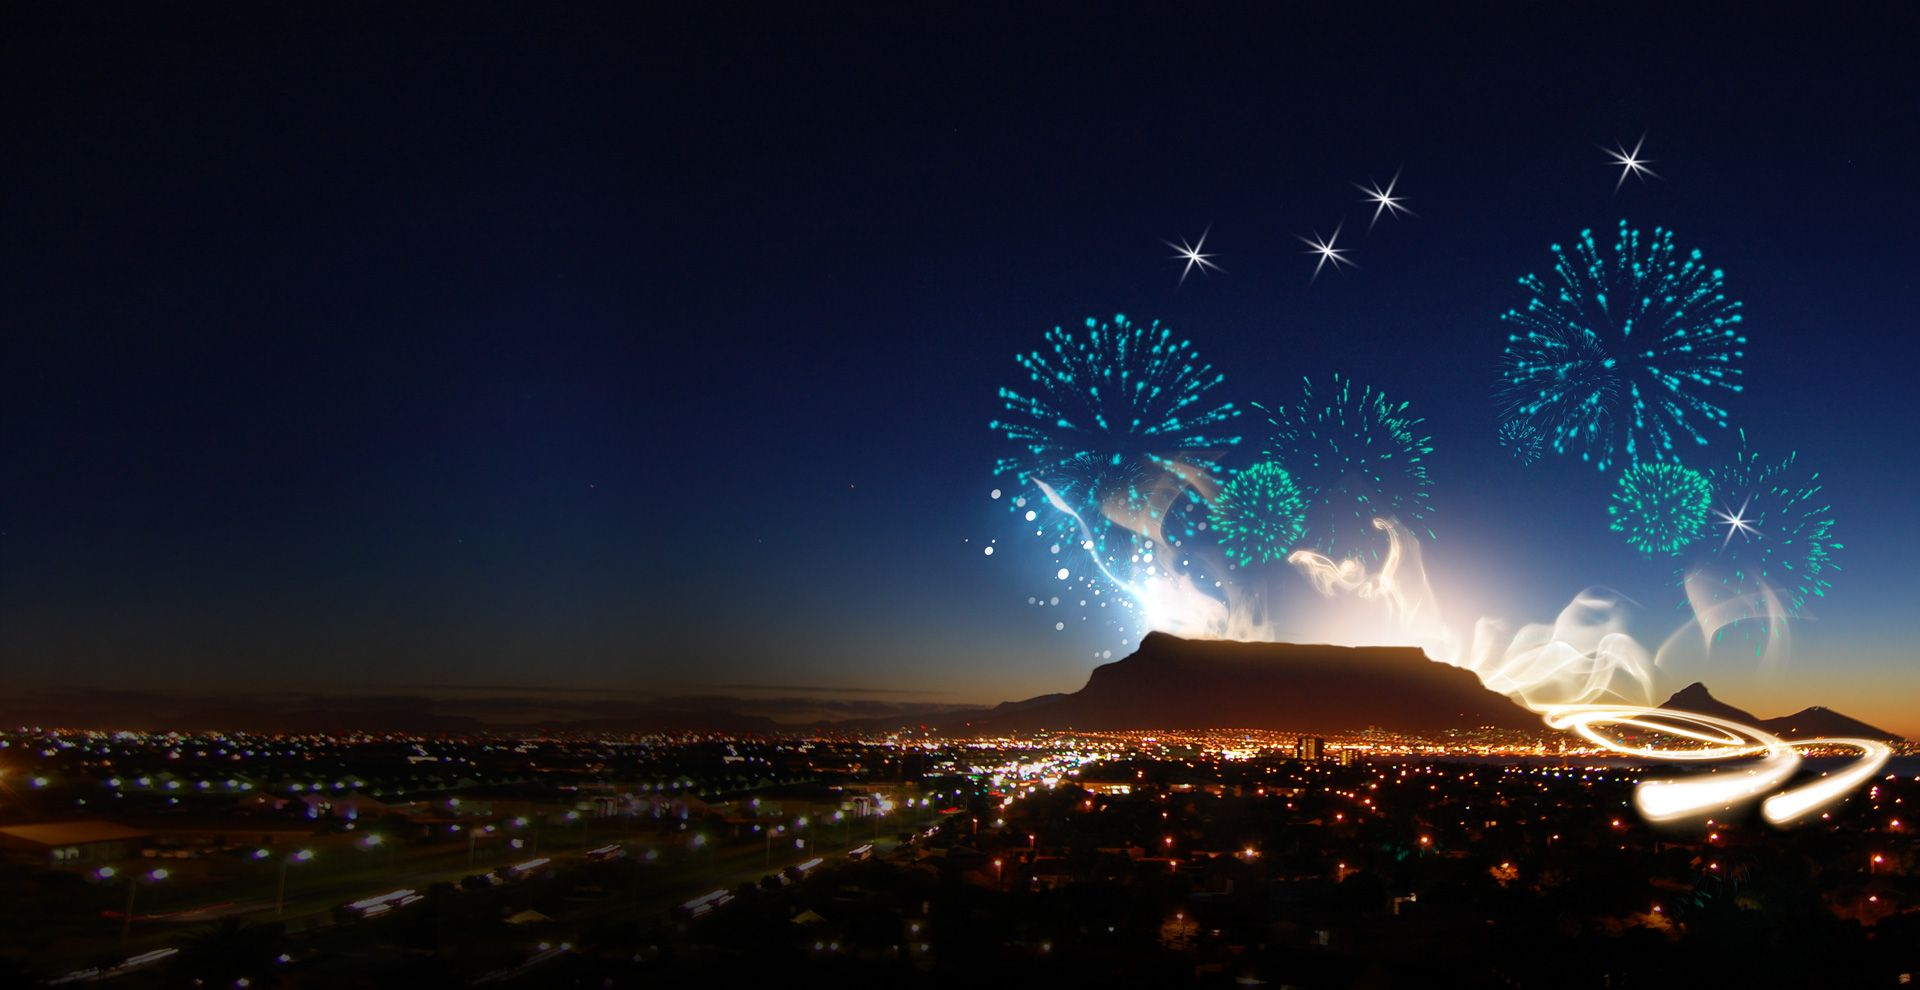 Ring in the new year in the Mother City that surrounds